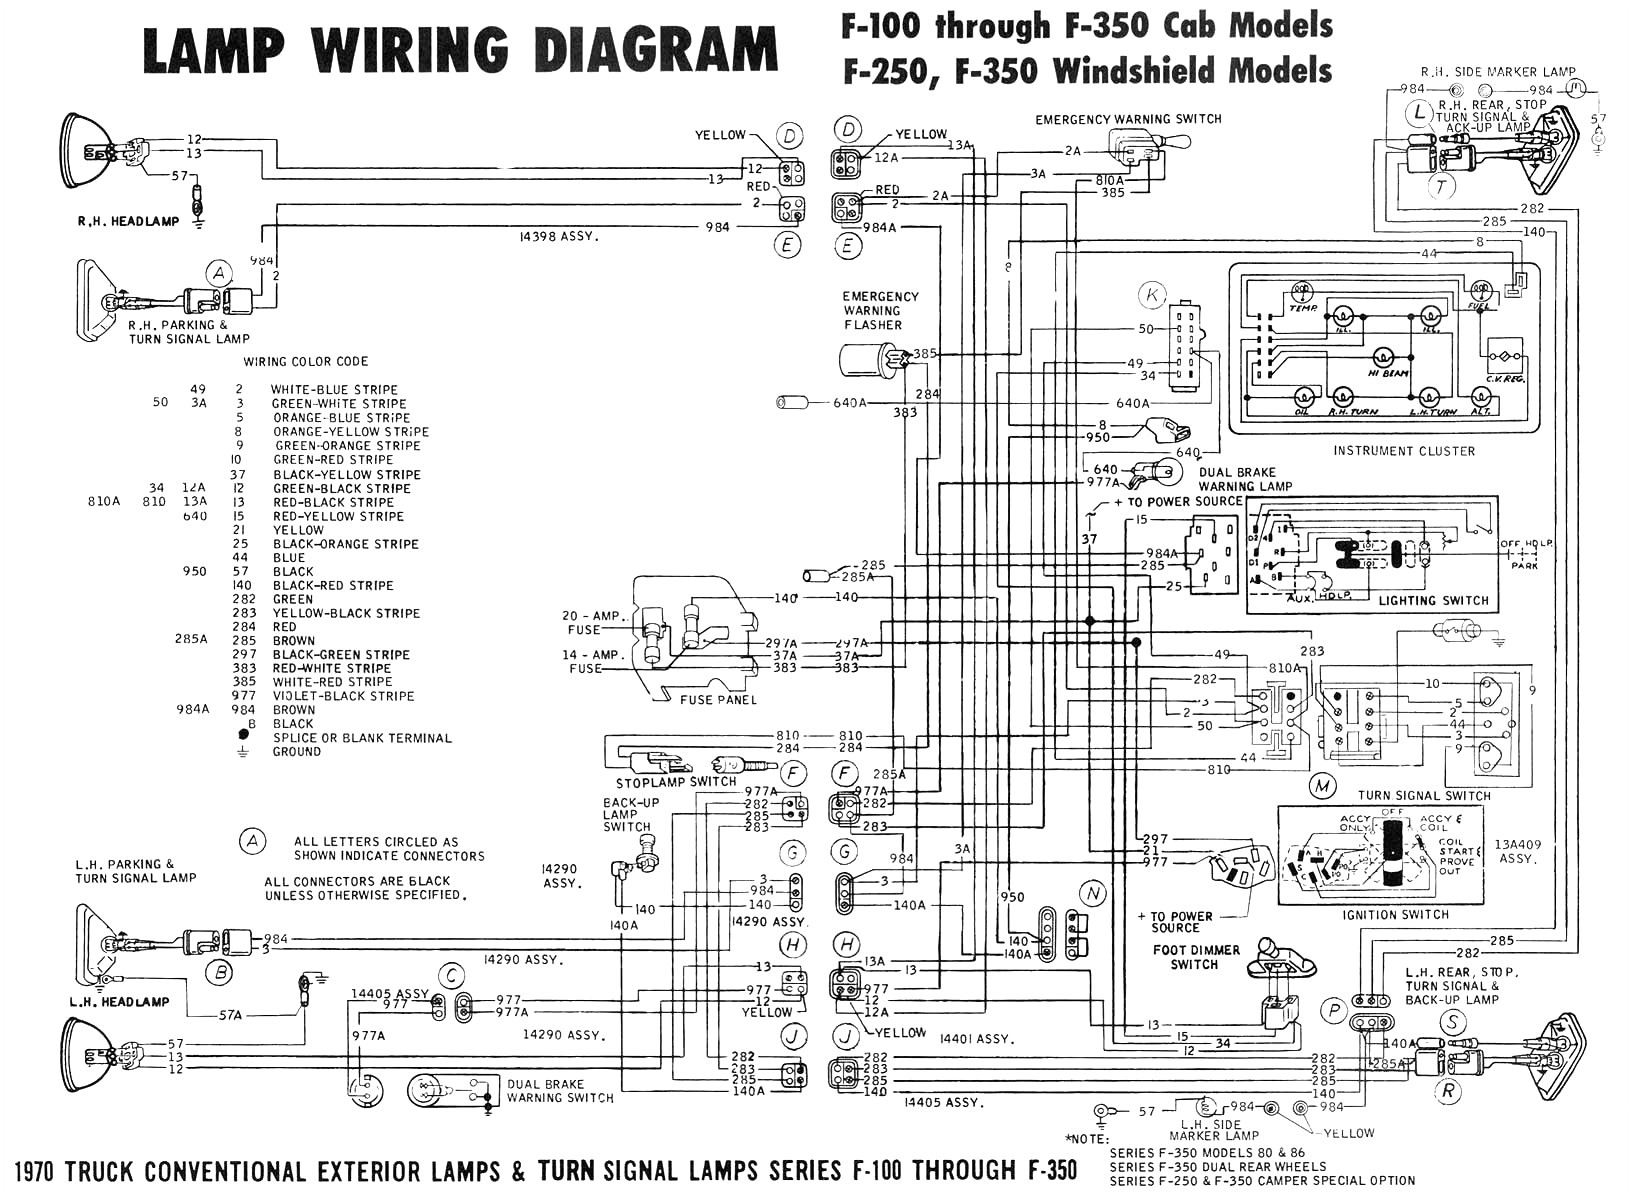 Tail Light Wiring Diagram For 2001 Lesabre